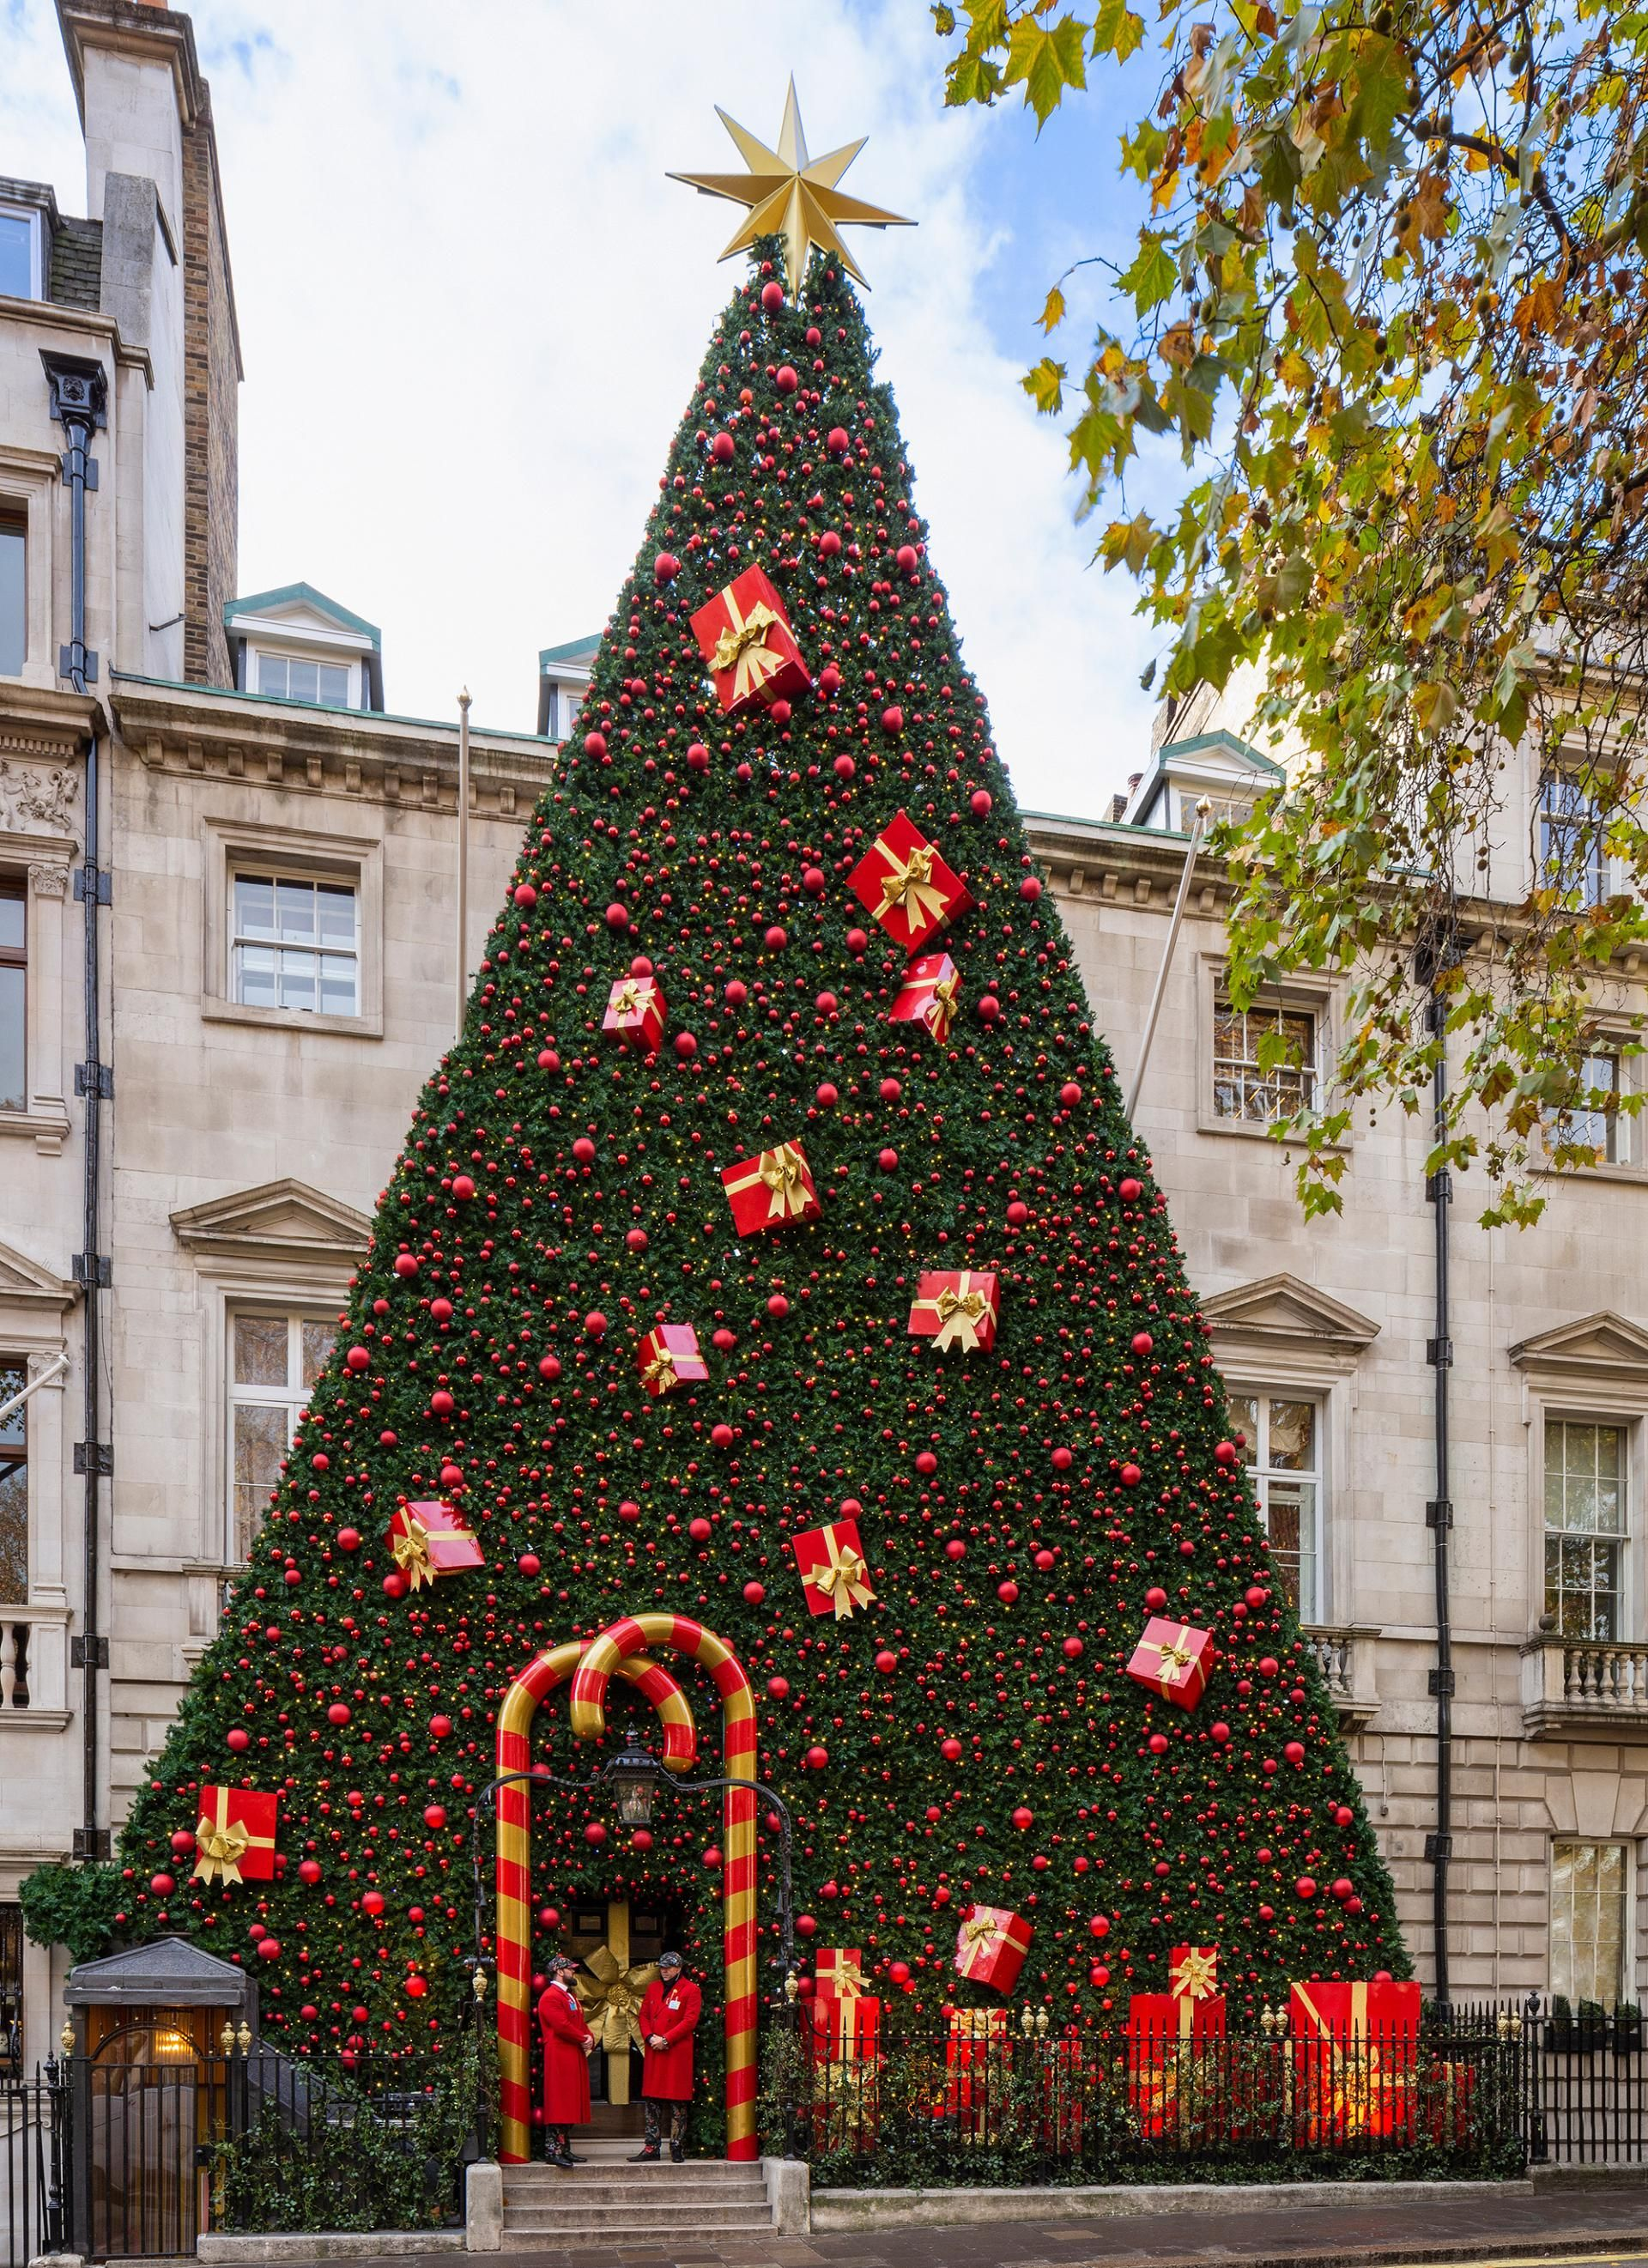 The Best Christmas Trees In London 2018 Interiors House London Christmas Cool Christmas Trees Funny Christmas Tree